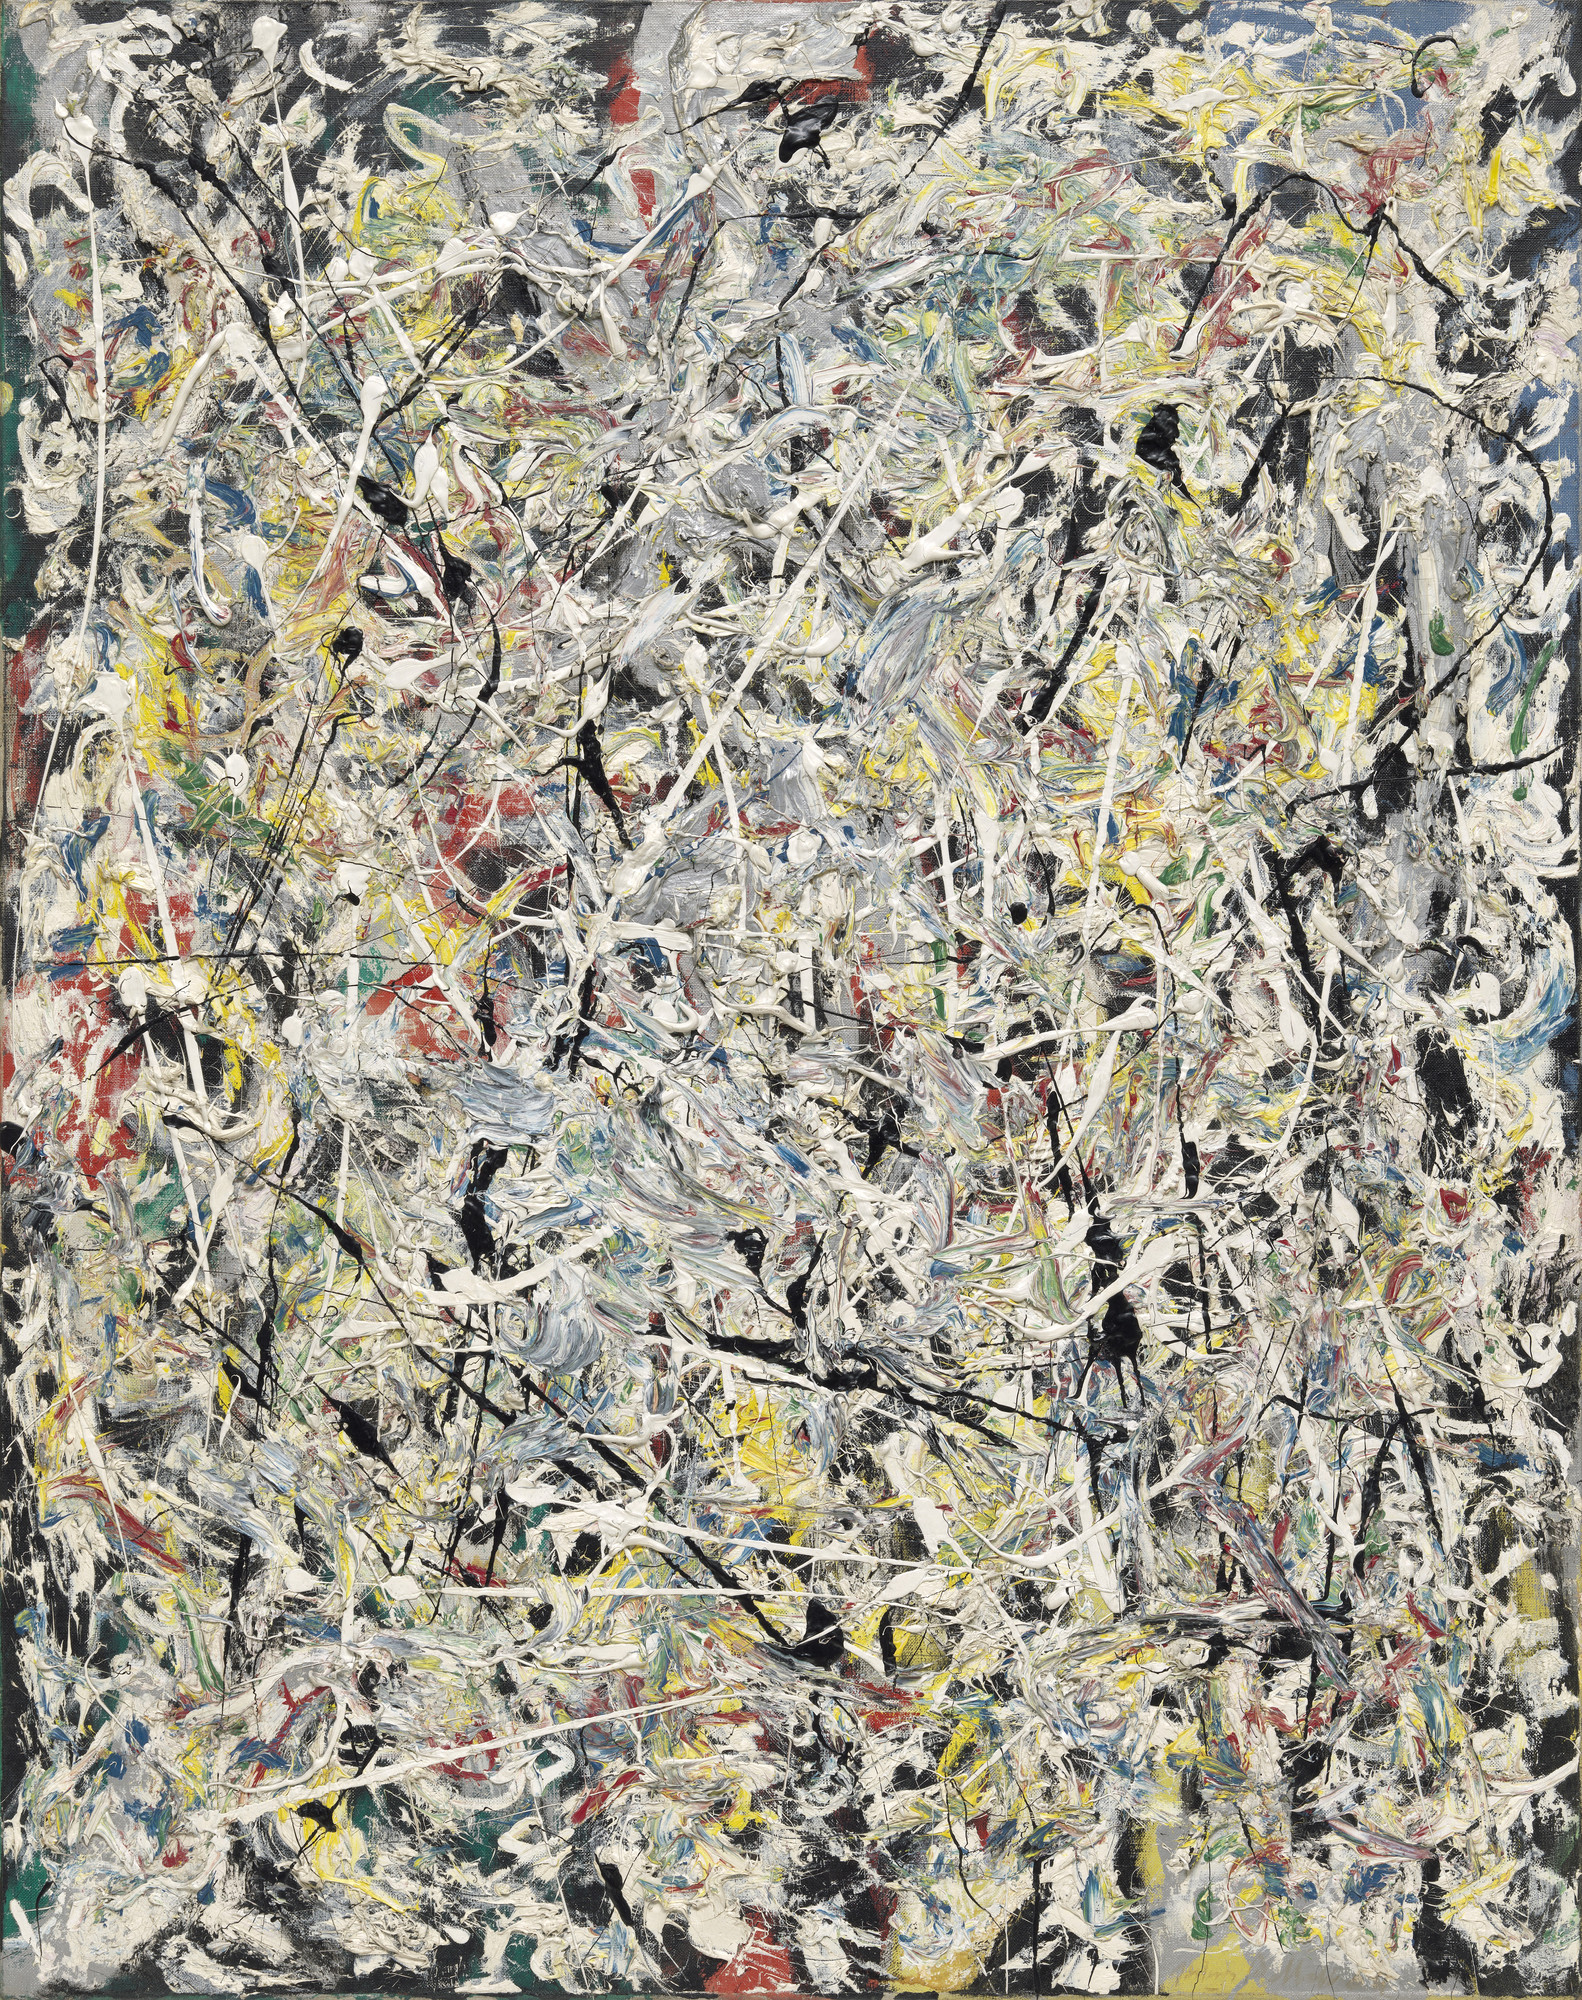 jackson pollock white light moma jackson pollock white light 1954